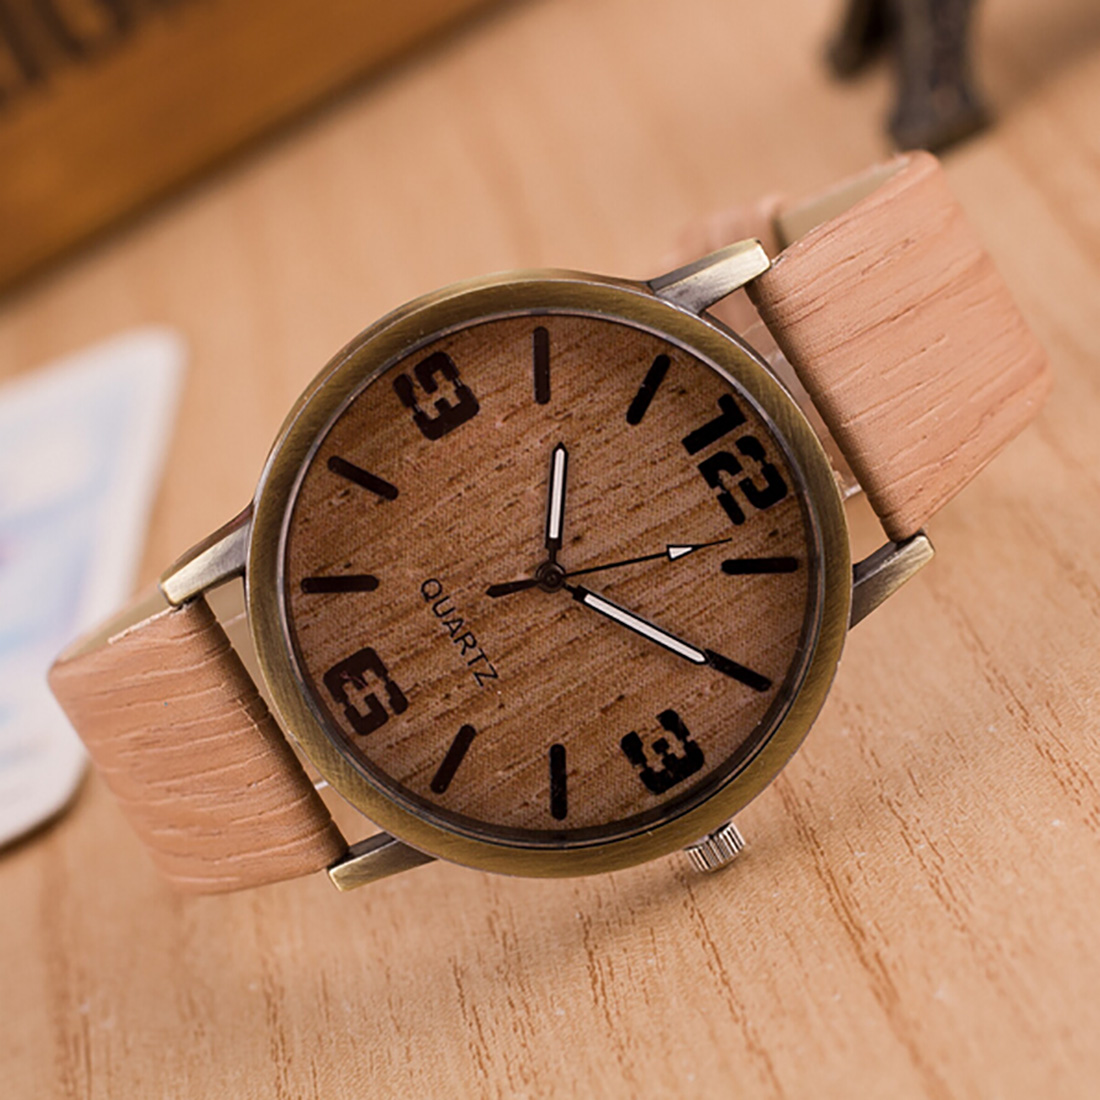 Simulation Wooden Quartz Men Watches Casual Wooden Color Leather Strap Watch Wood Male Wristwatch Relojes Relogio Masculino saat<br><br>Aliexpress